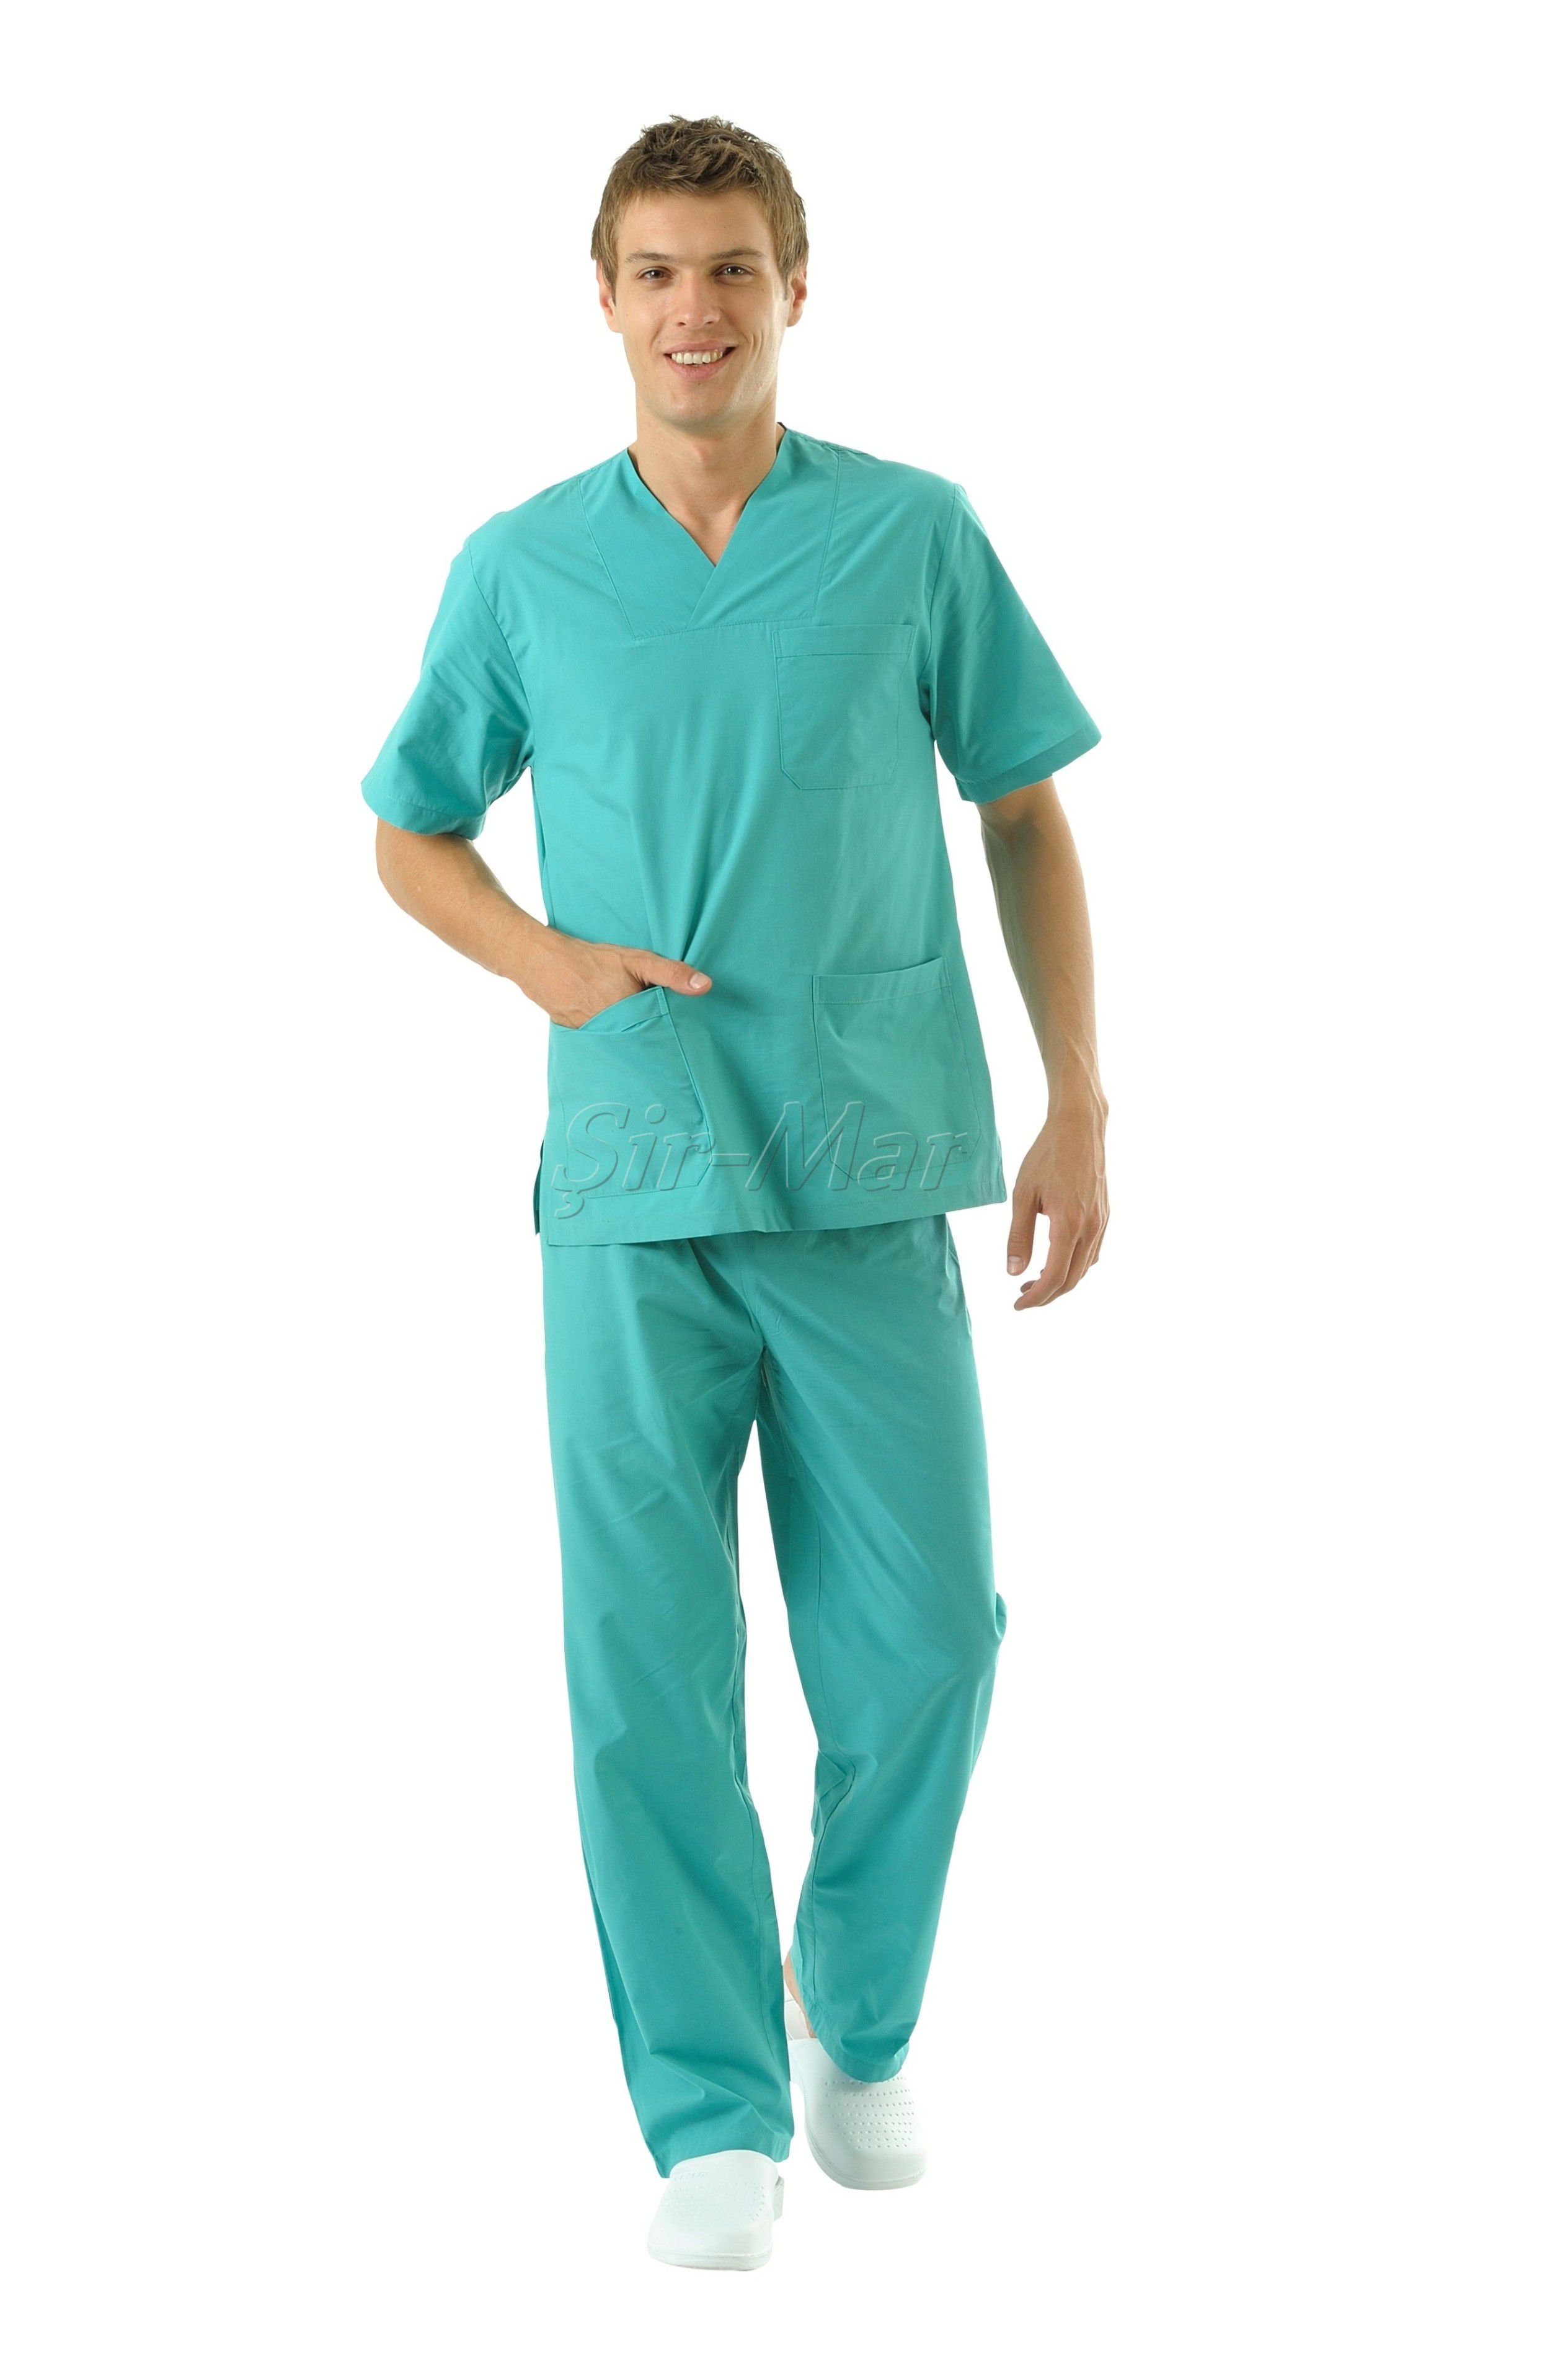 SirMar Hospital Clothing, Shoe & Bedding Export Co.  - TurkishFashion.net